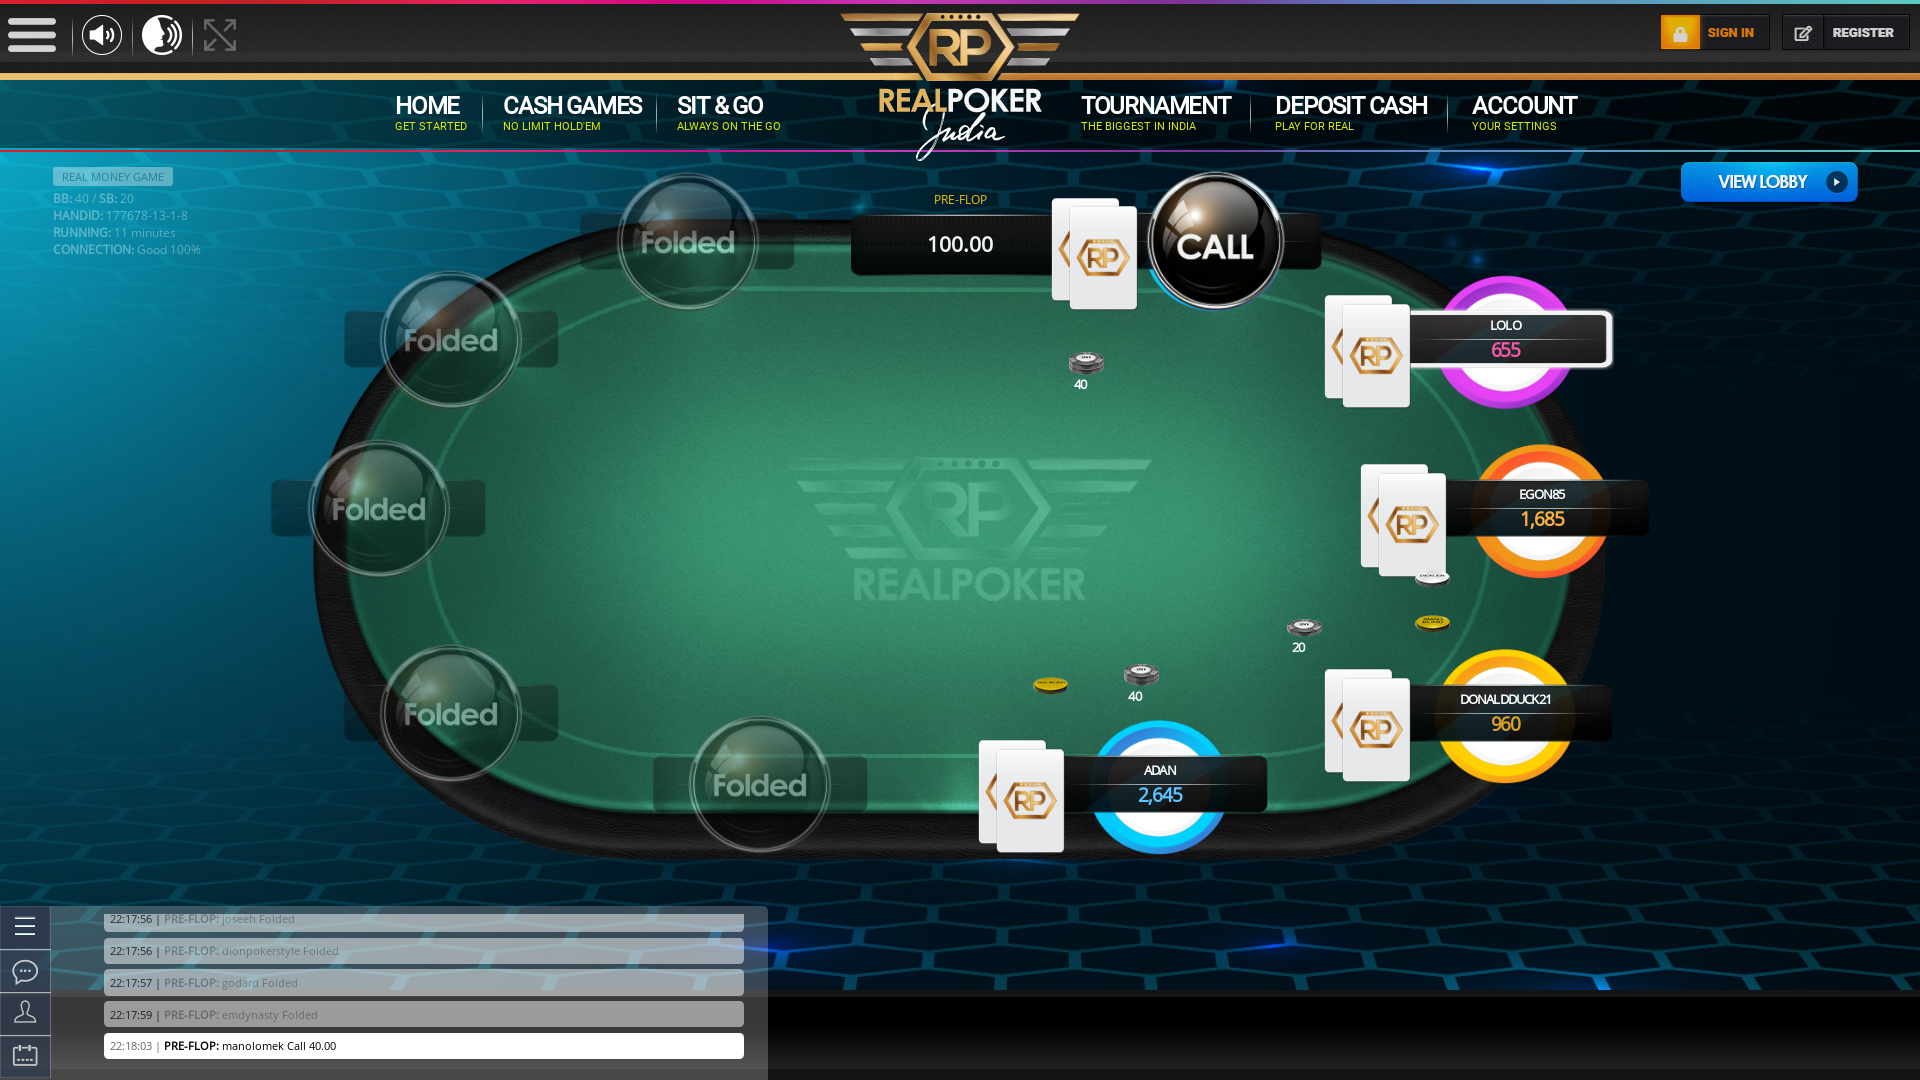 Banaswadi, Bangalore Poker Website 10 Player